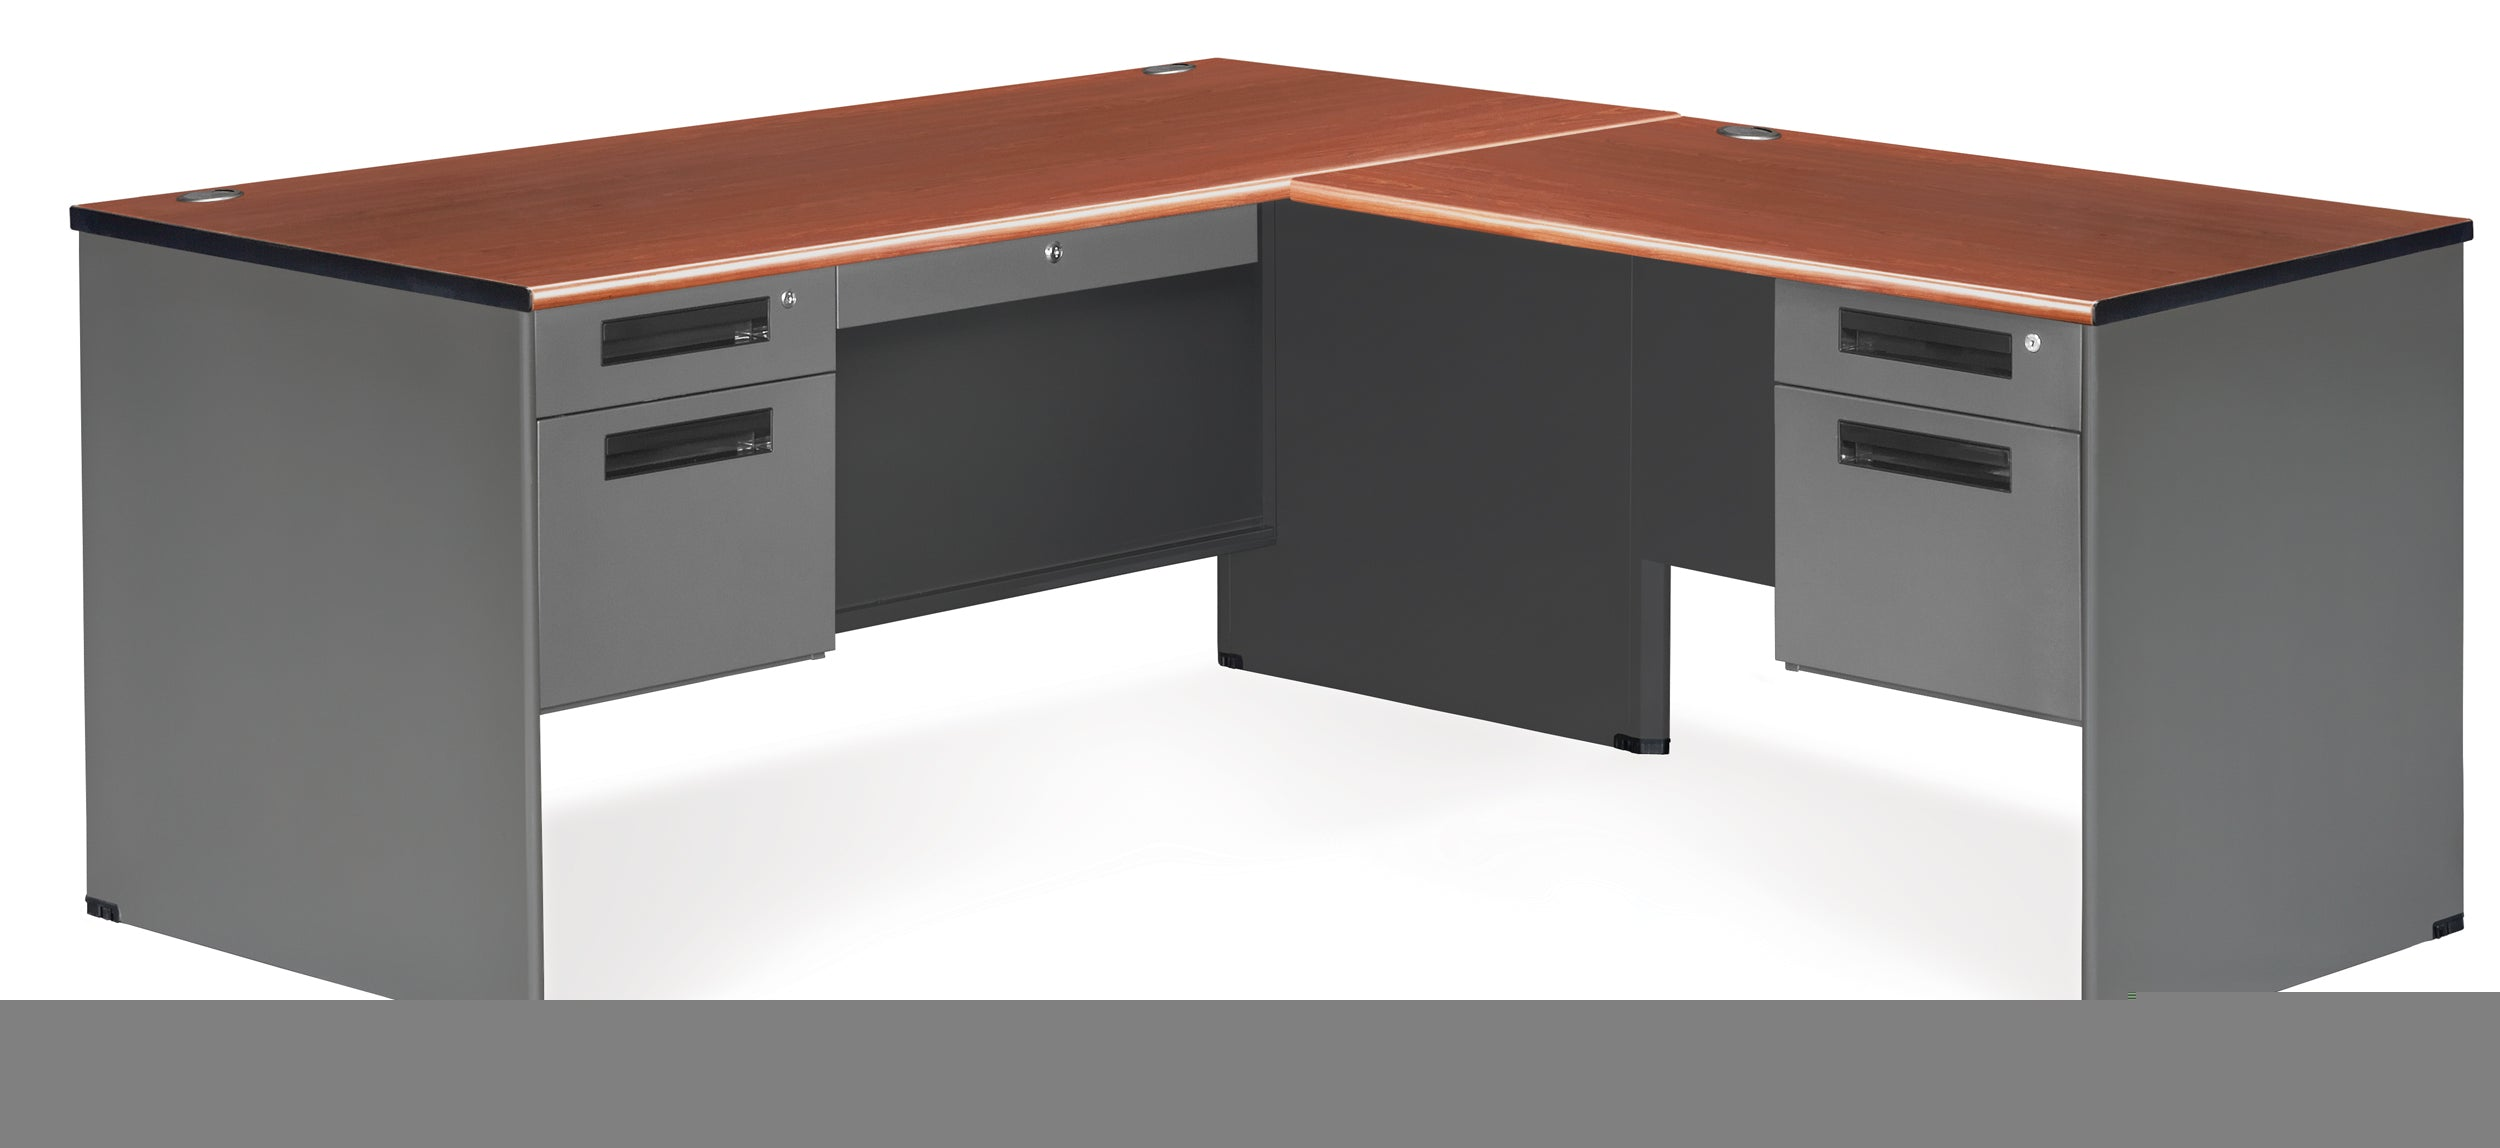 77366R Executive Series L-Shaped 5-Drawer Desk, Right Pedestal Return